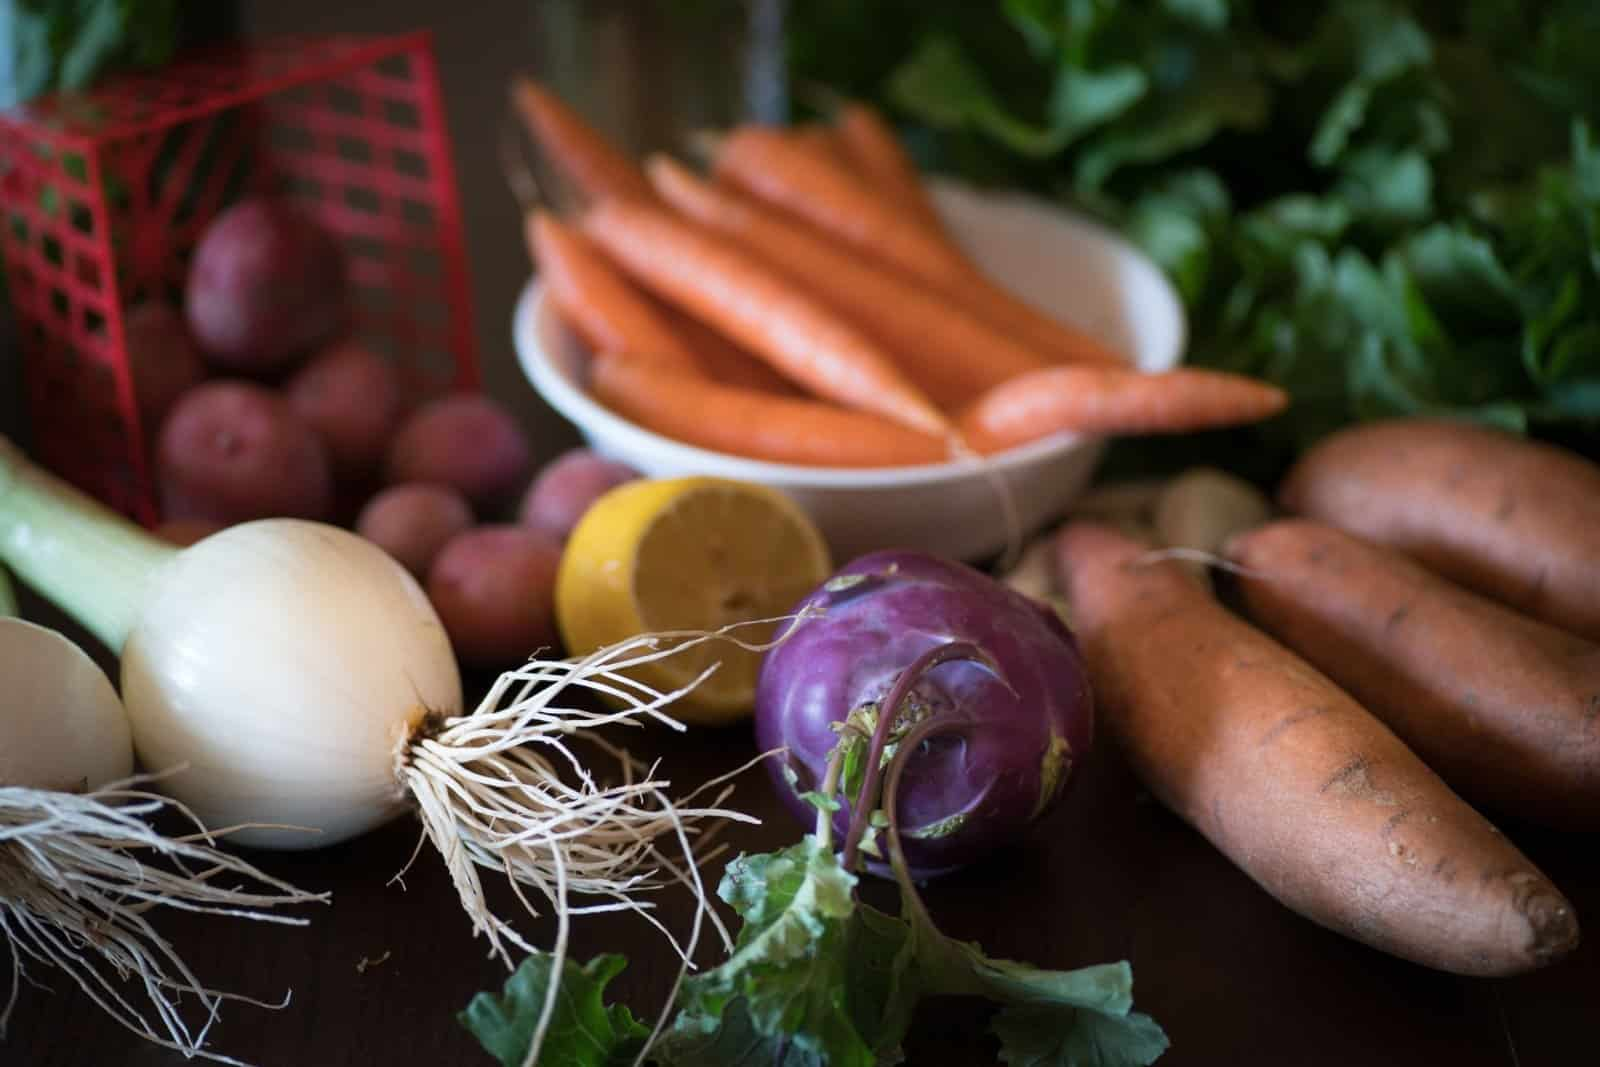 7 Tips for Healthy Home Cooking